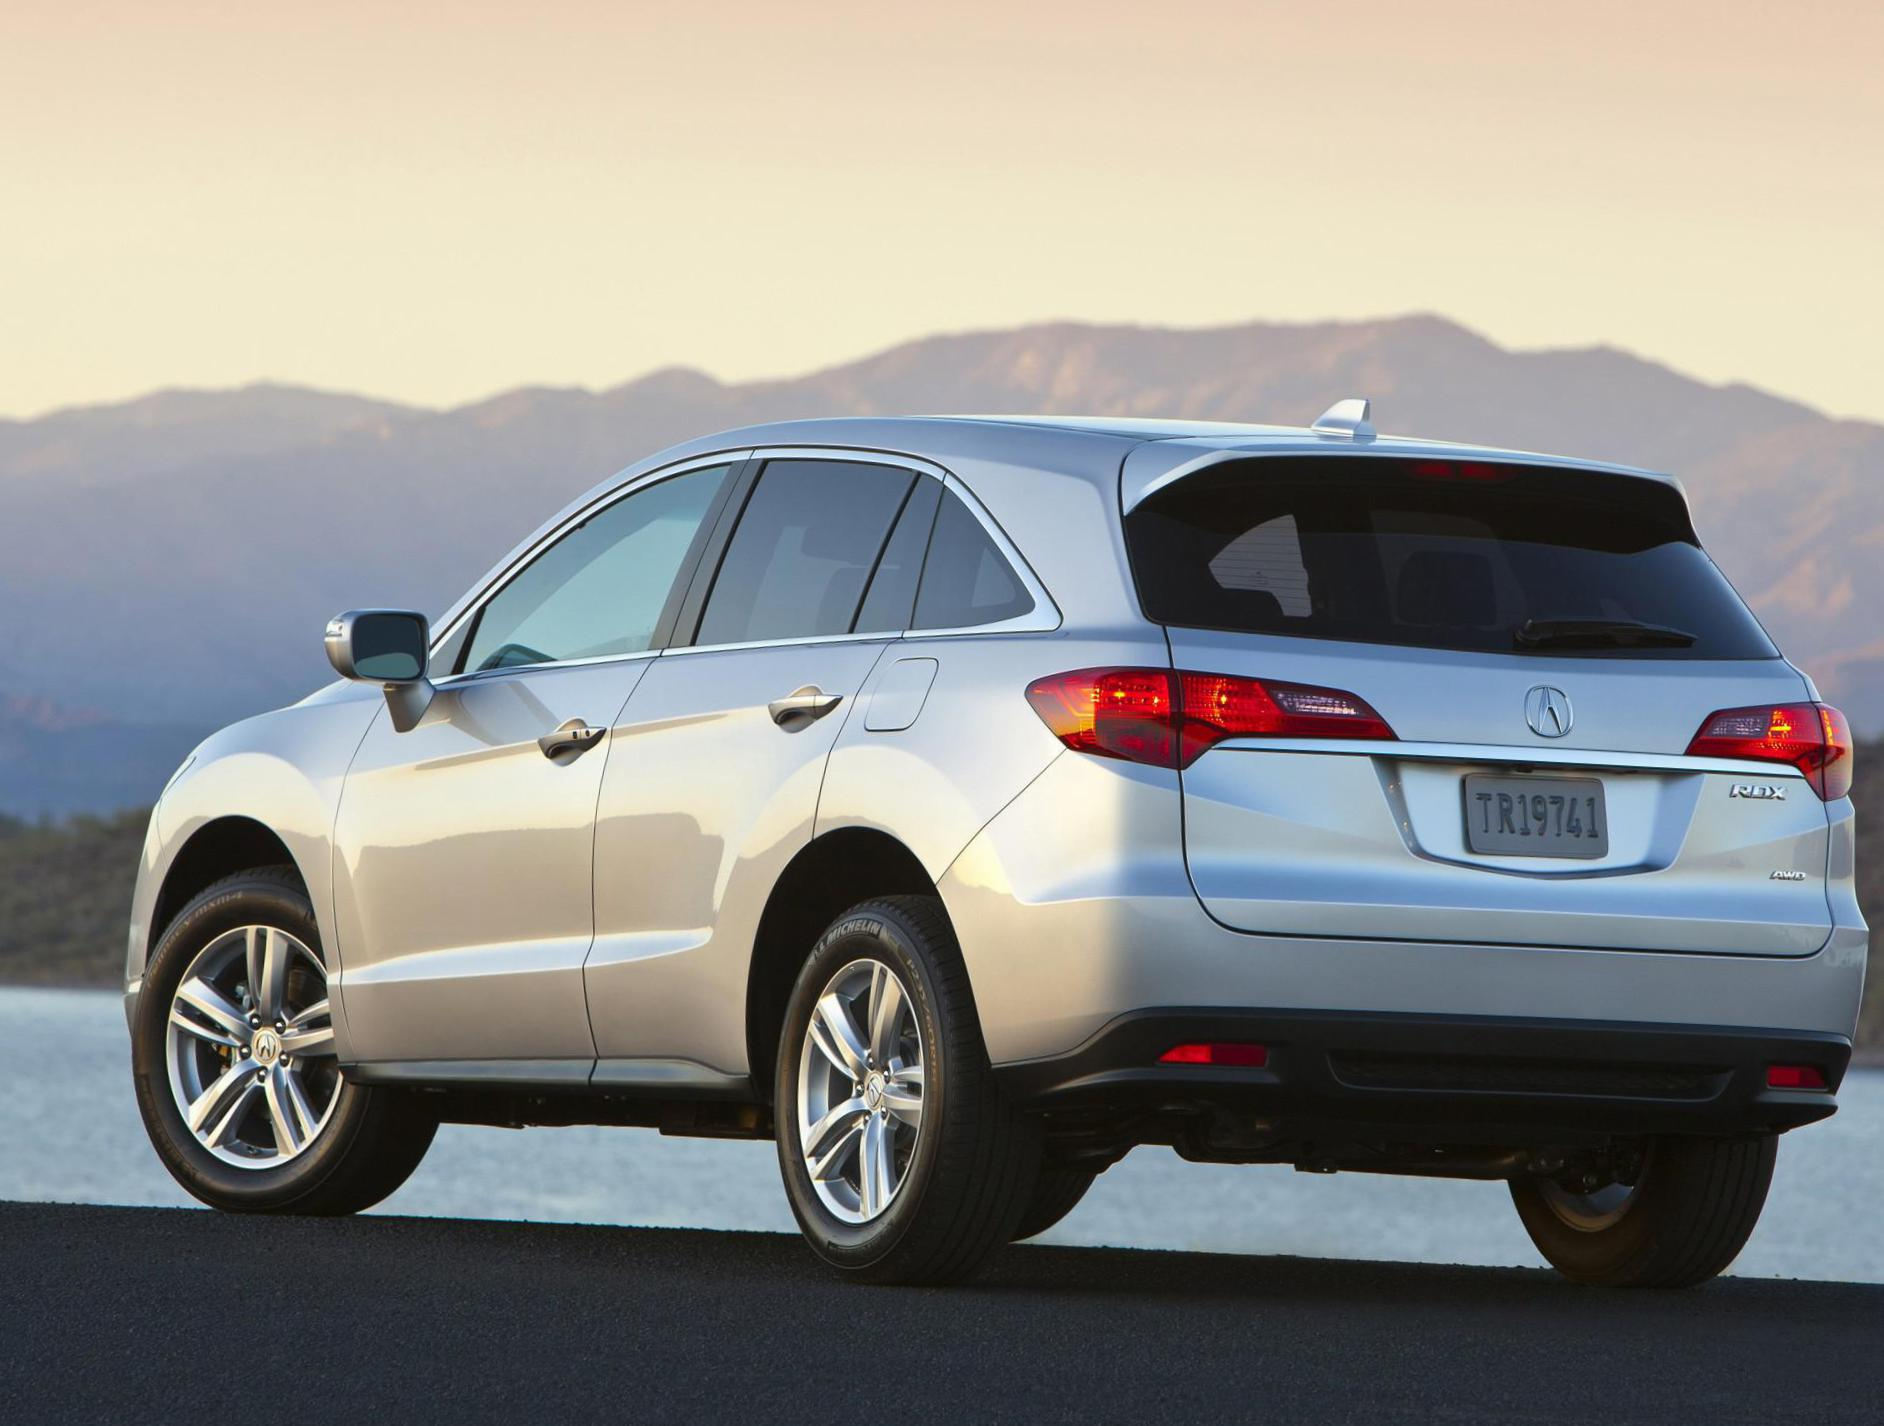 RDX Acura approved suv